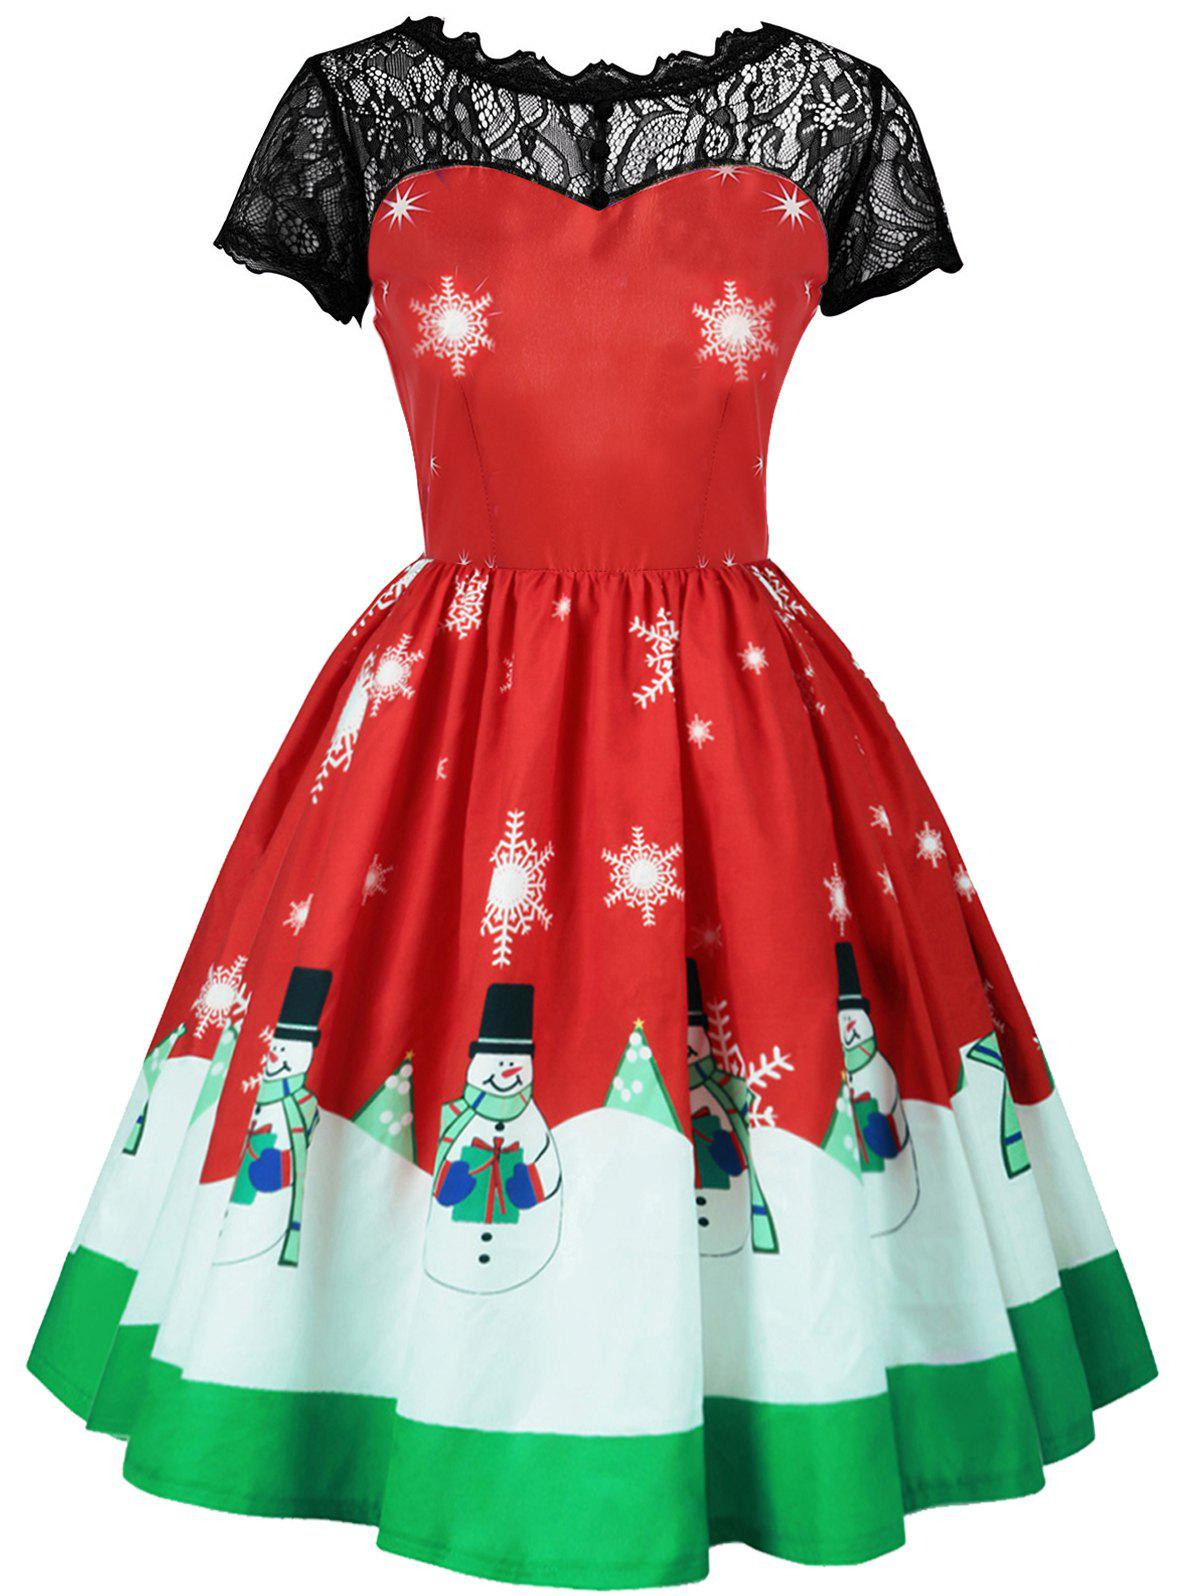 Plus Size Christmas Snowman and Snowflake Print DressWOMEN<br><br>Size: 3XL; Color: RED; Style: Vintage; Material: Polyester; Silhouette: A-Line; Dresses Length: Mid-Calf; Neckline: Round Collar; Sleeve Length: Short Sleeves; Embellishment: Lace; Pattern Type: Print; With Belt: No; Season: Fall,Spring; Weight: 0.2700kg; Package Contents: 1 x Dress;